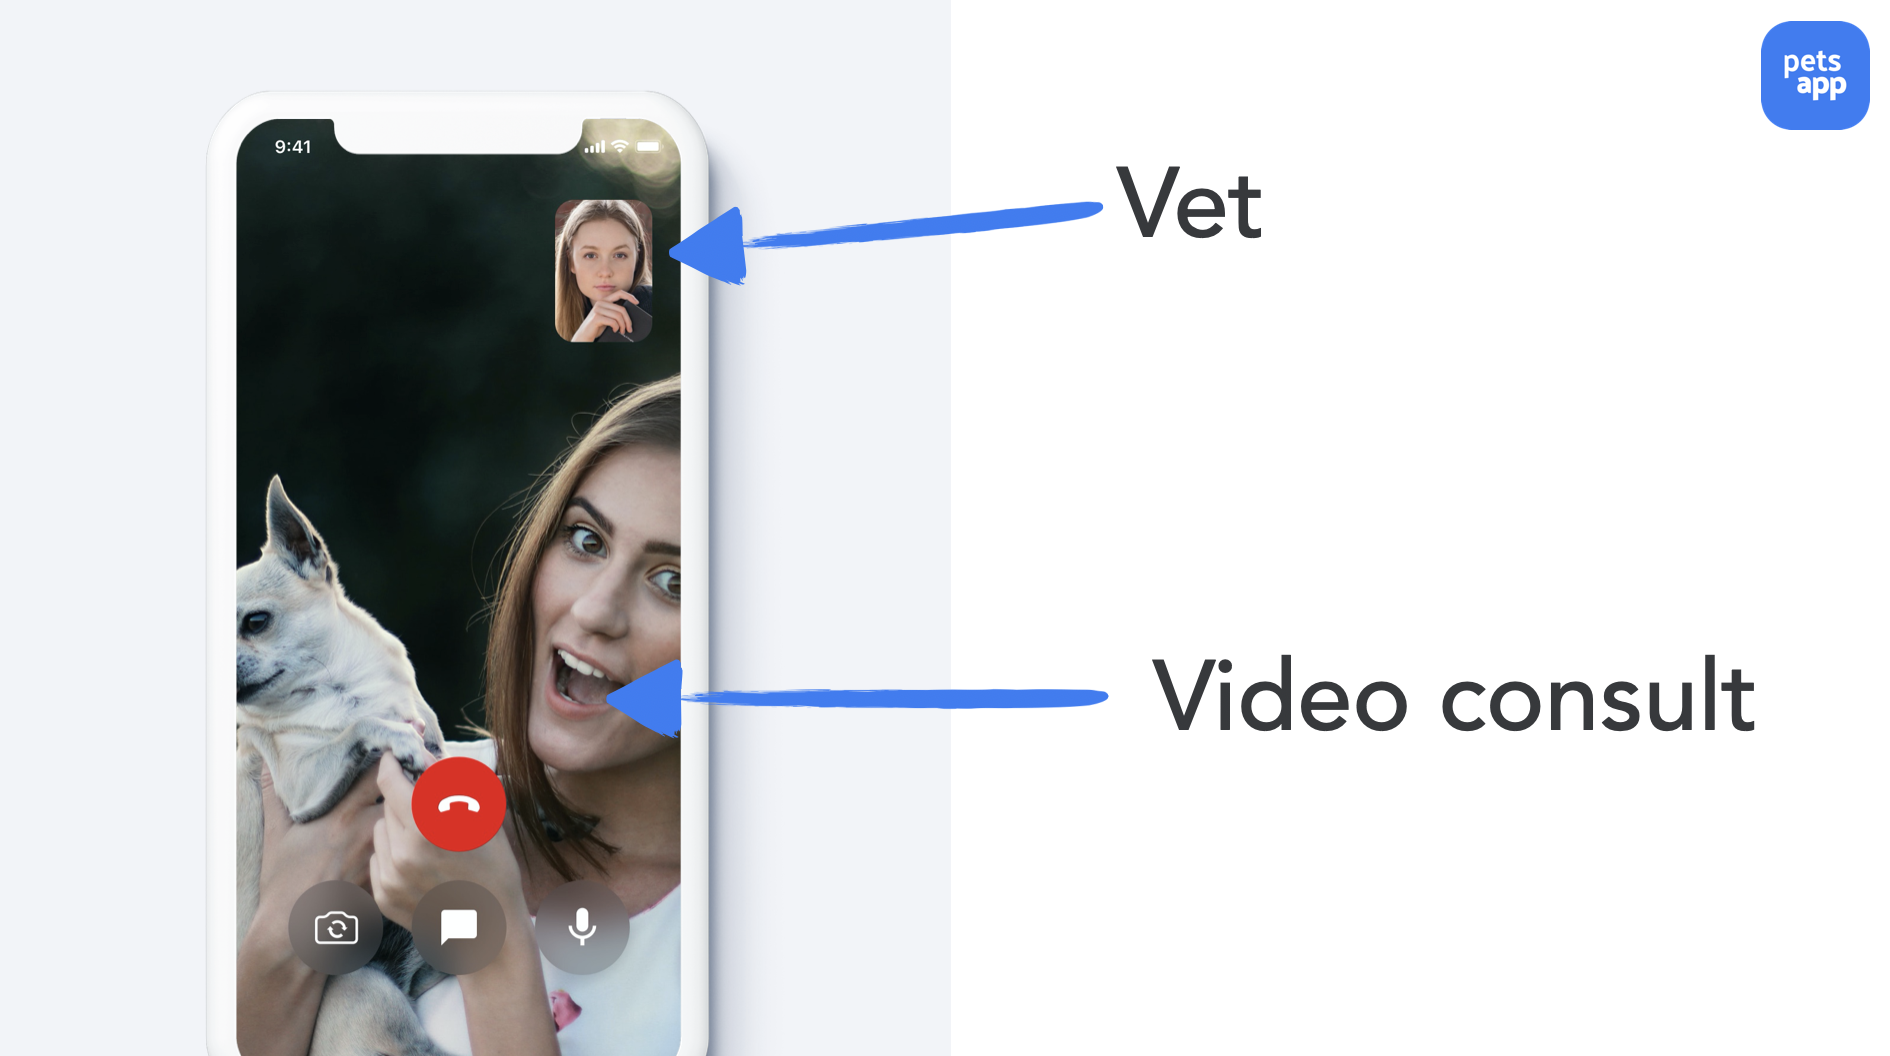 vet video consults